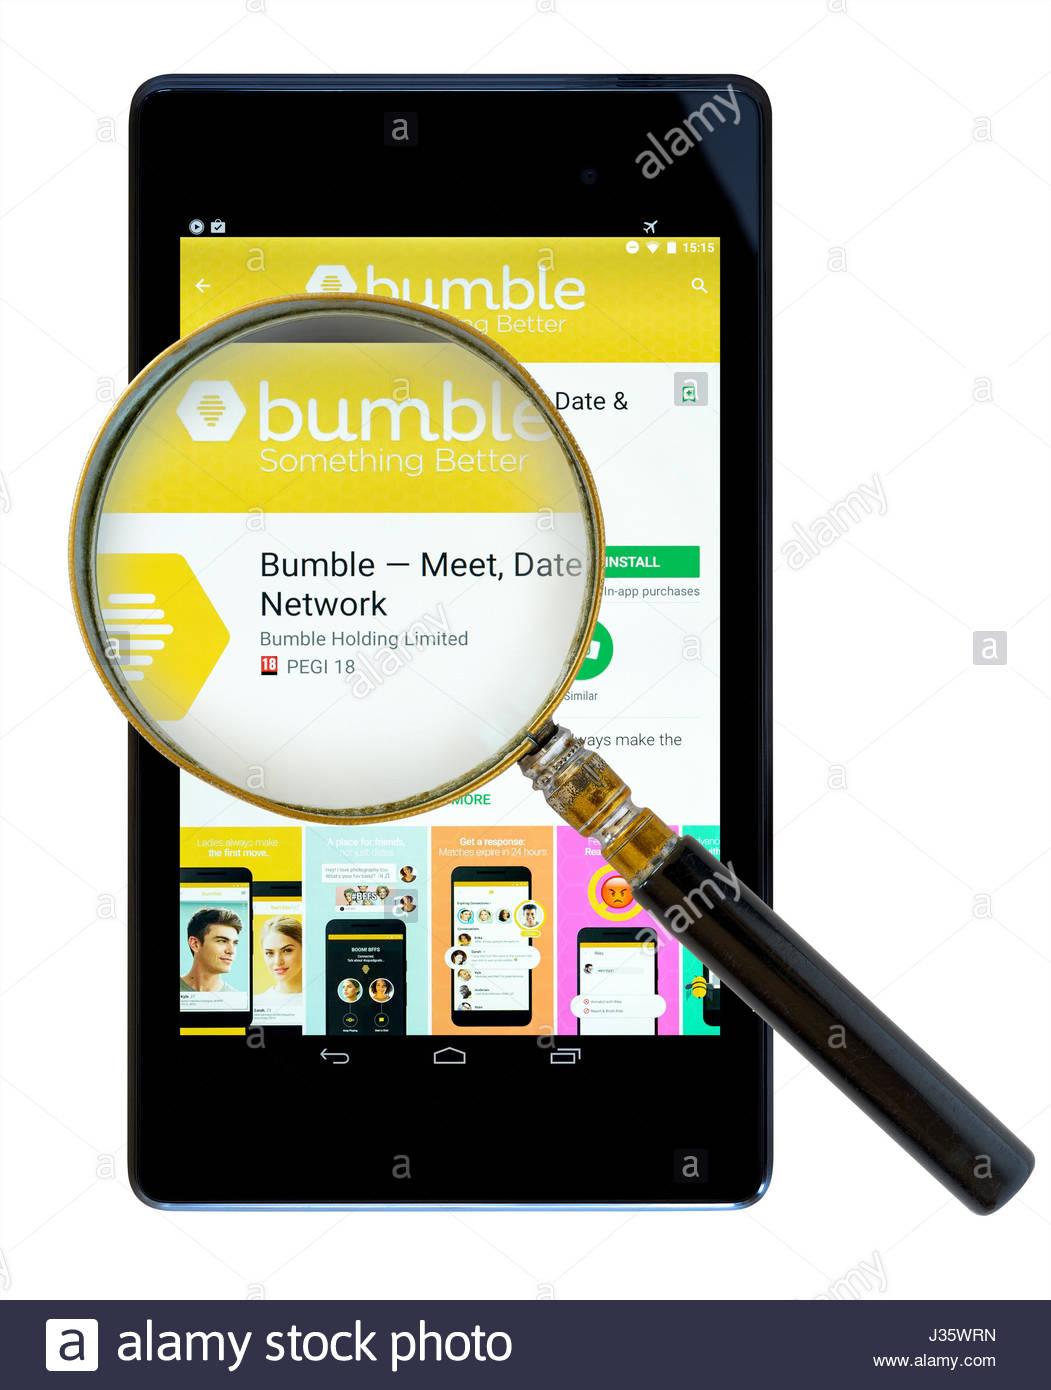 Bumble app android